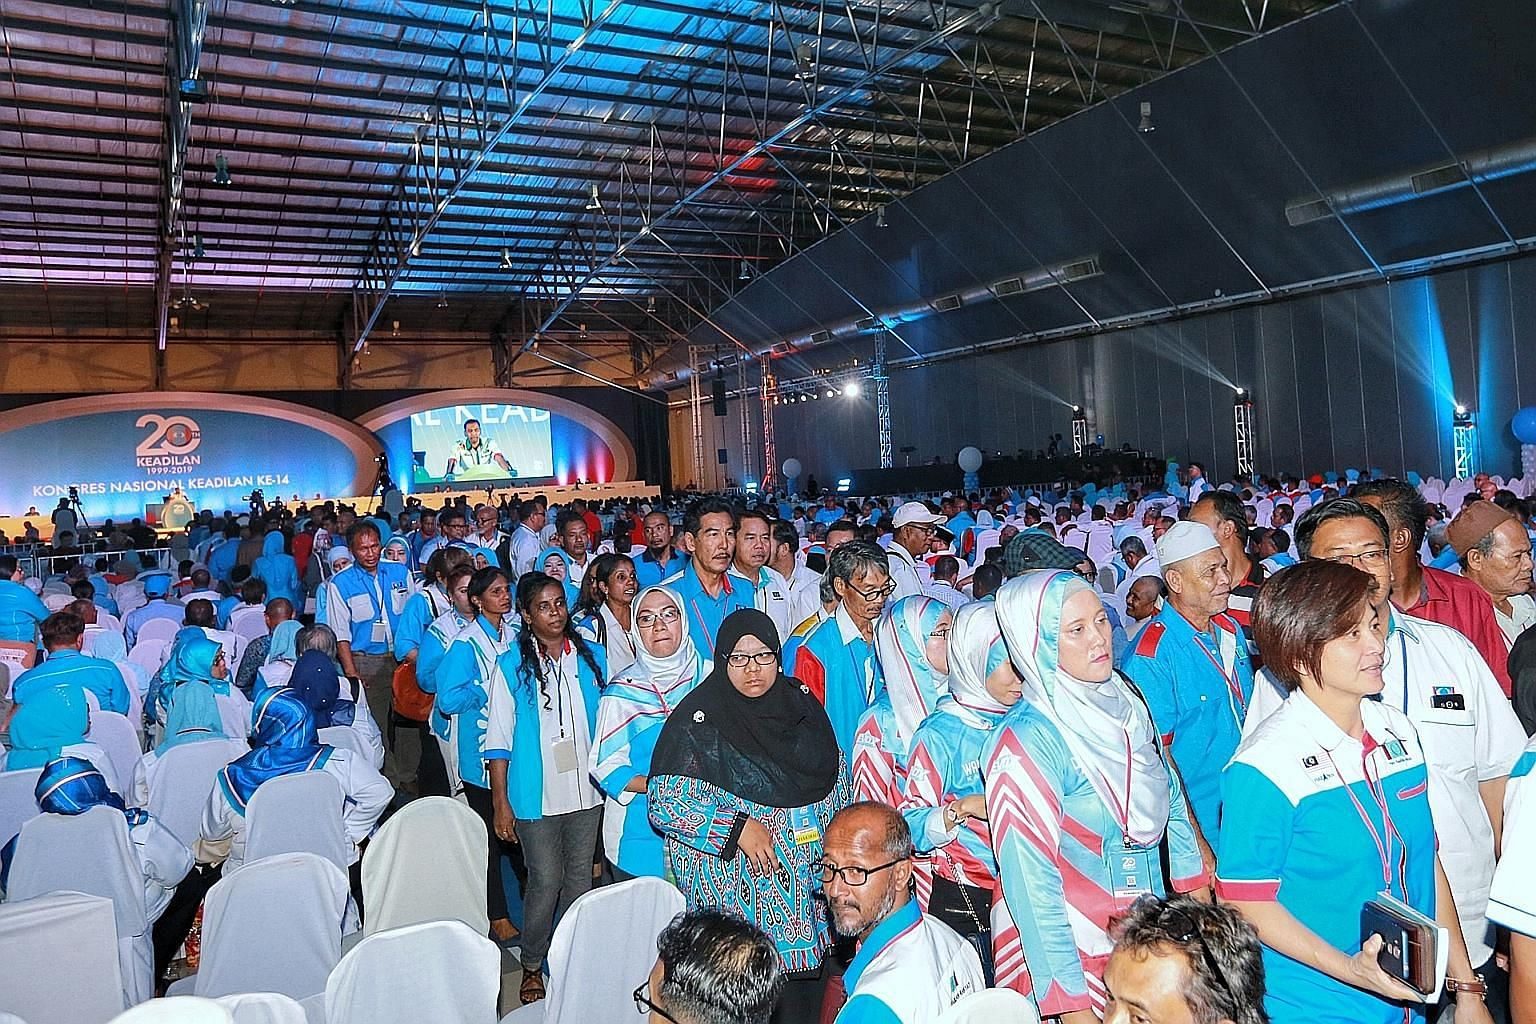 Parti Keadilan Rakyat members allied to deputy president Azmin Ali leaving the event hall where the congress was held yesterday. In a press conference after the walkout, Mr Azmin said party president Anwar Ibrahim's policy address paved the way for d